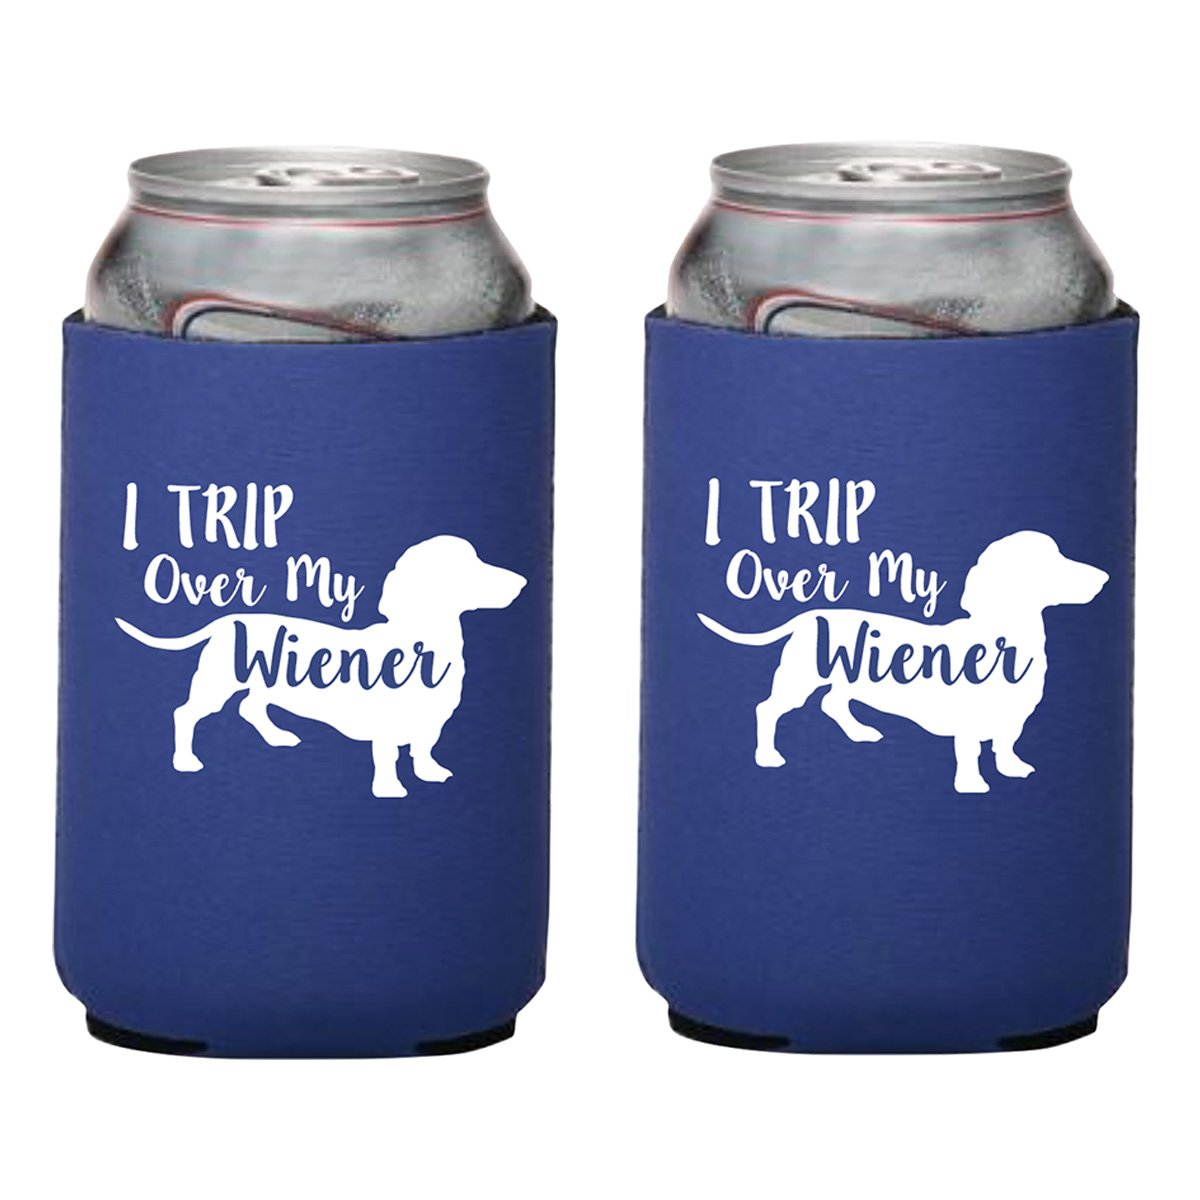 I Trip Over My Wiener Dachshund Wiener Dog Koozie Collapsible Can Cooler (Black)